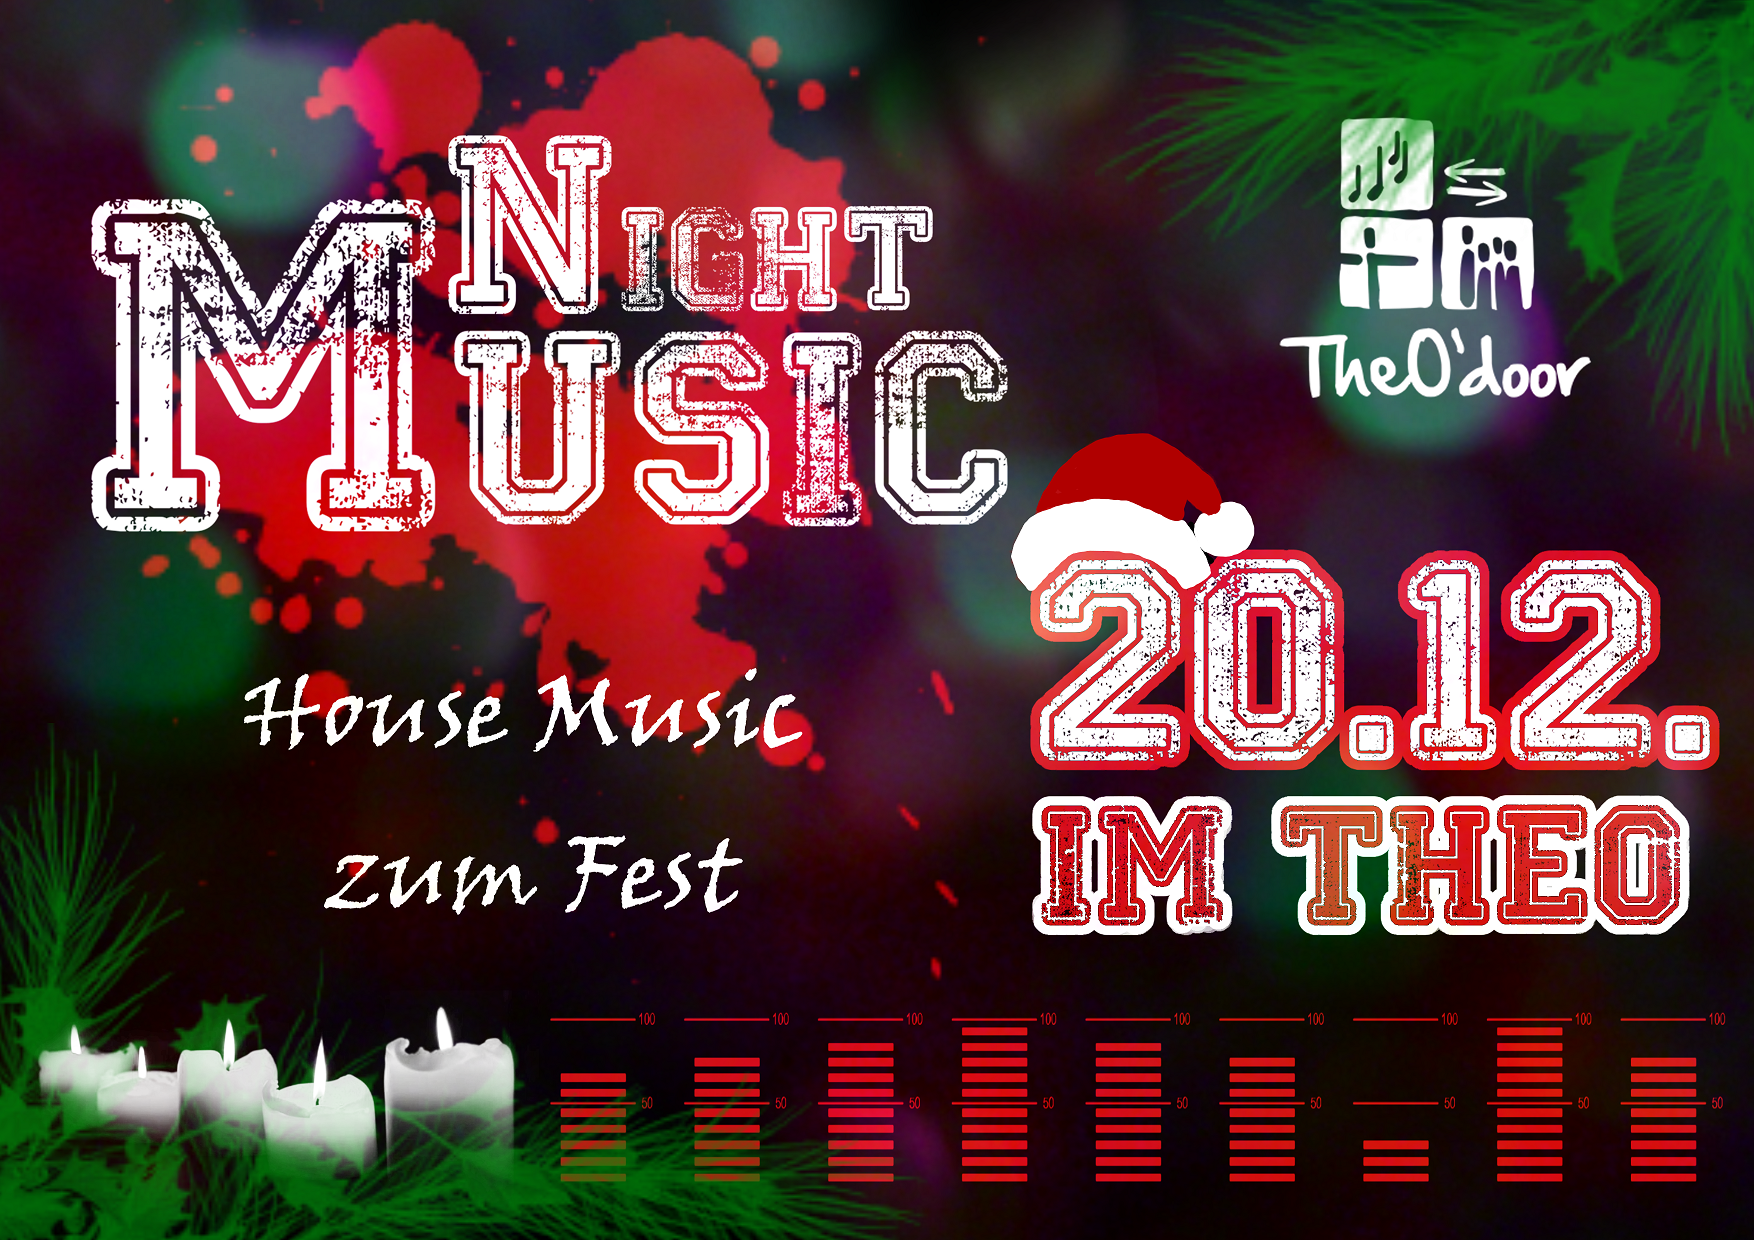 Music night - besinnlich ist morgen!